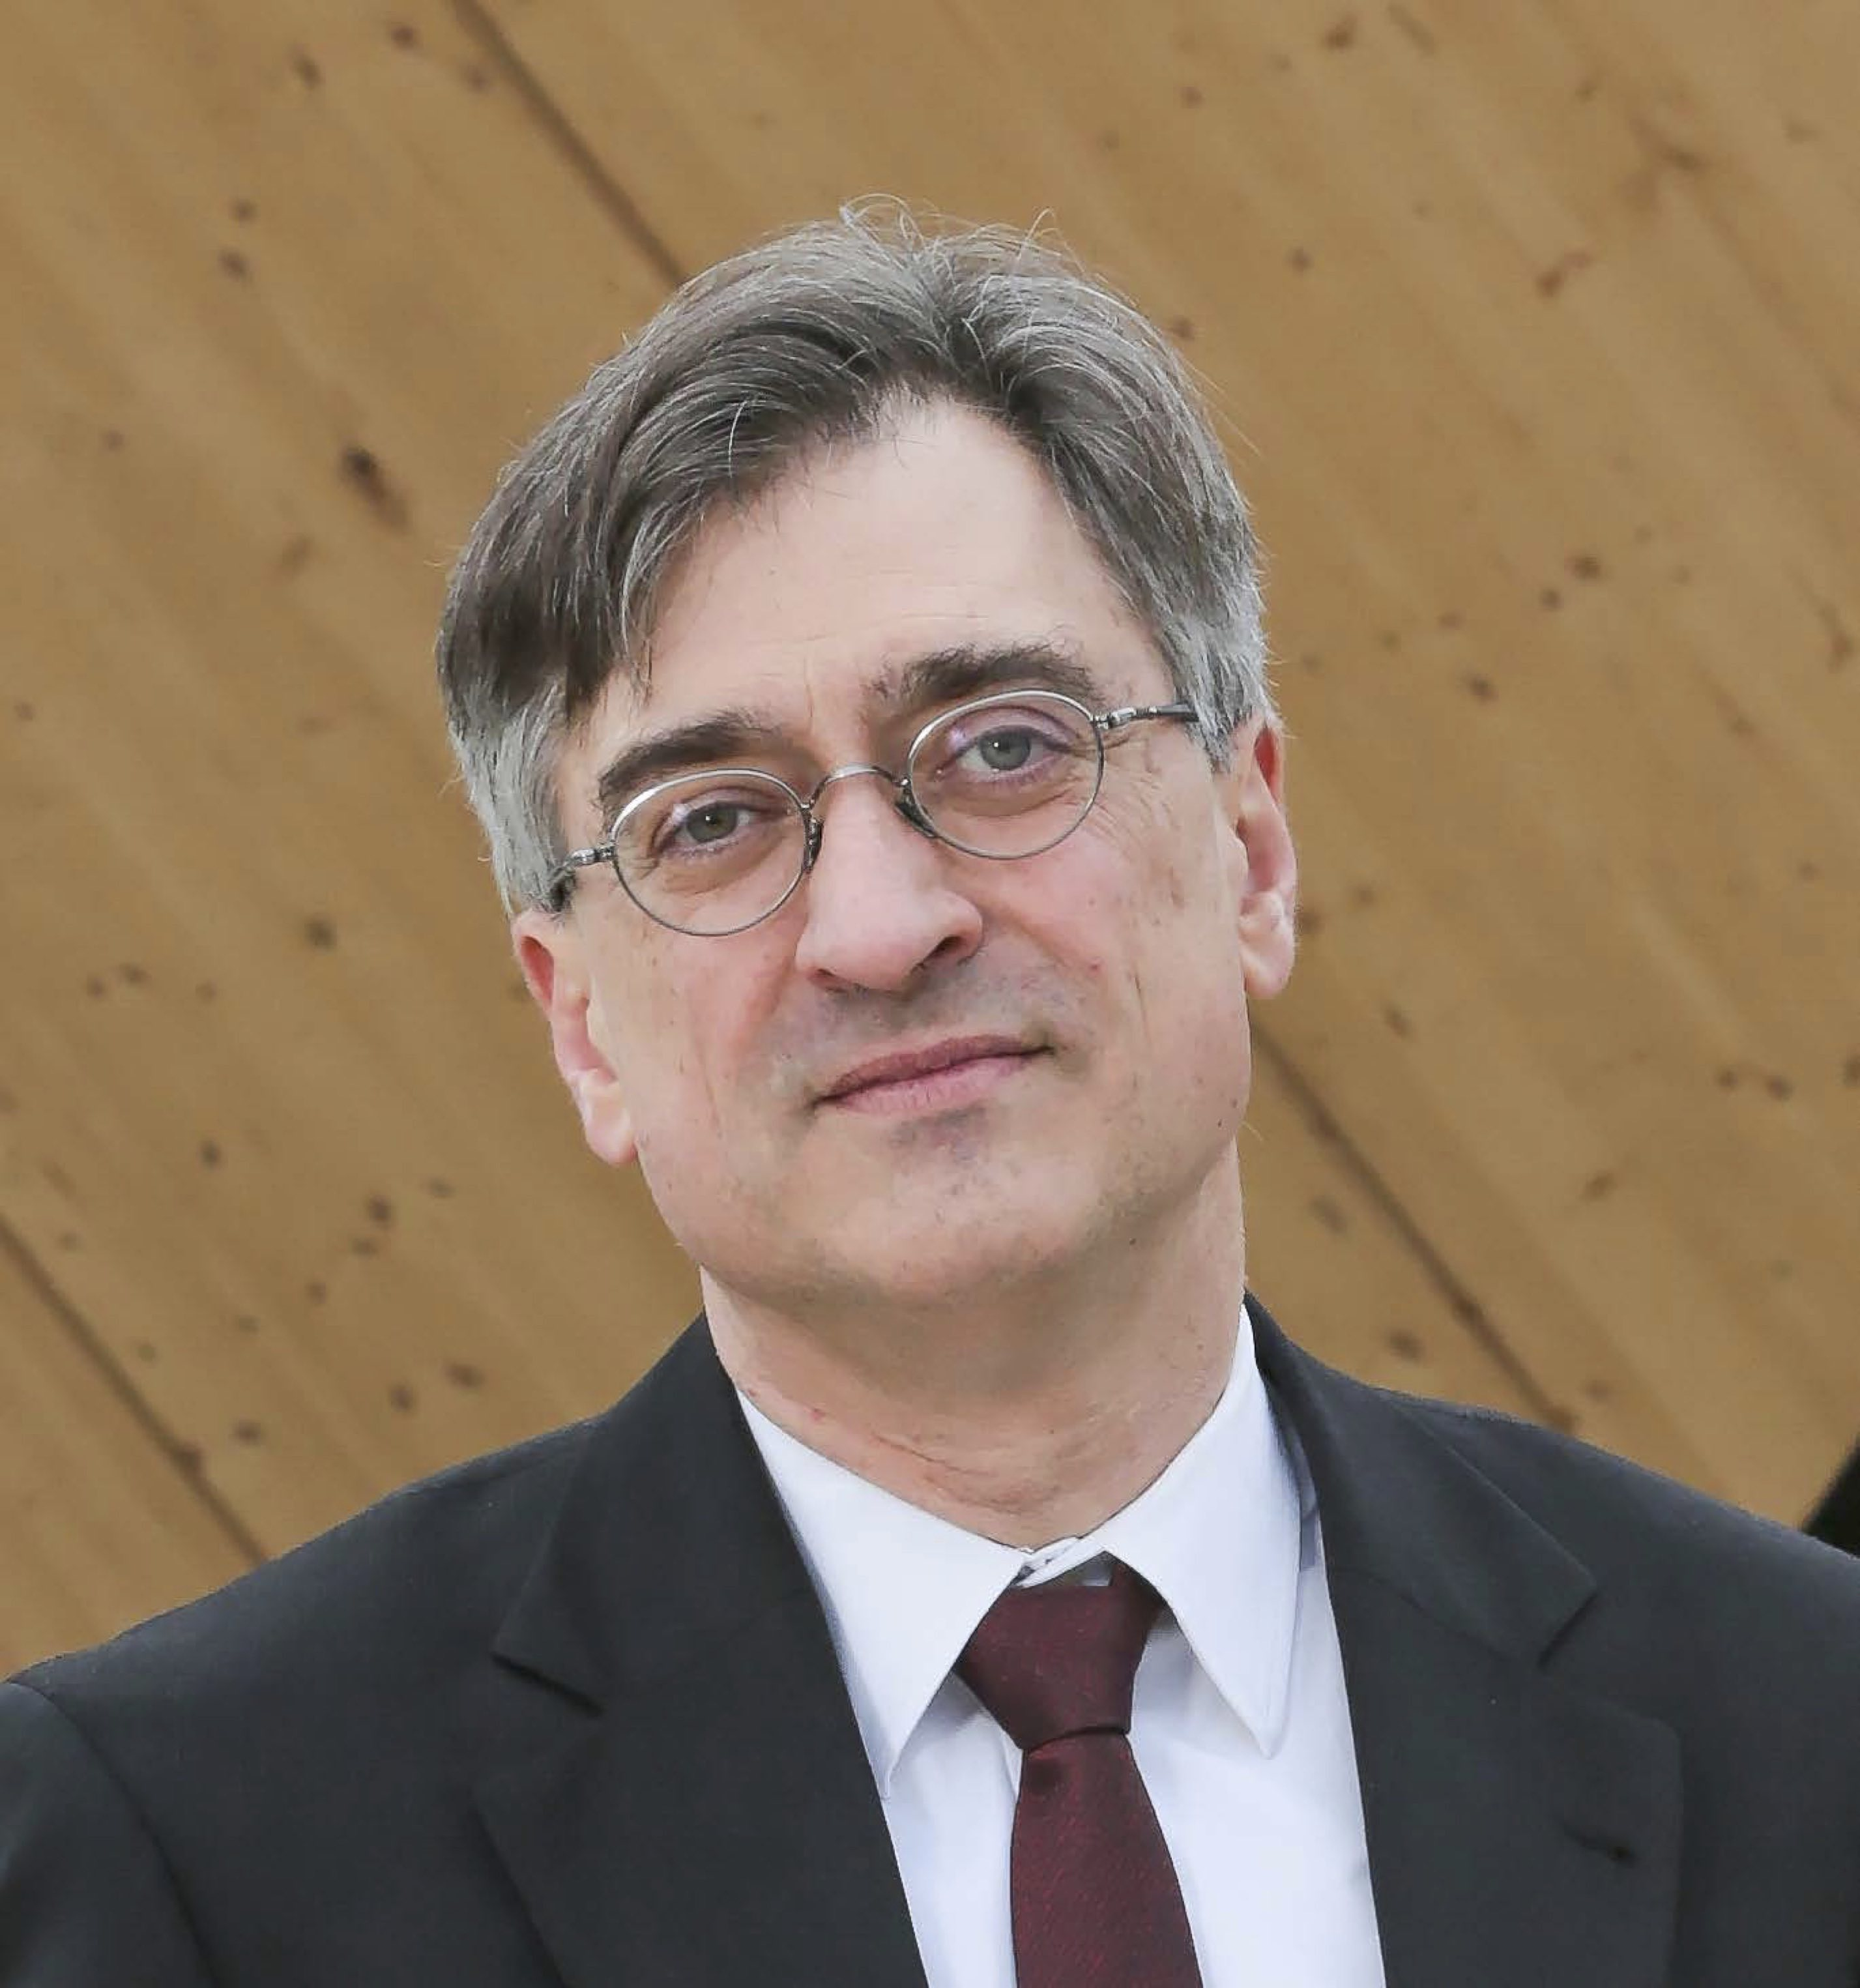 Professor Andreas Mortensen